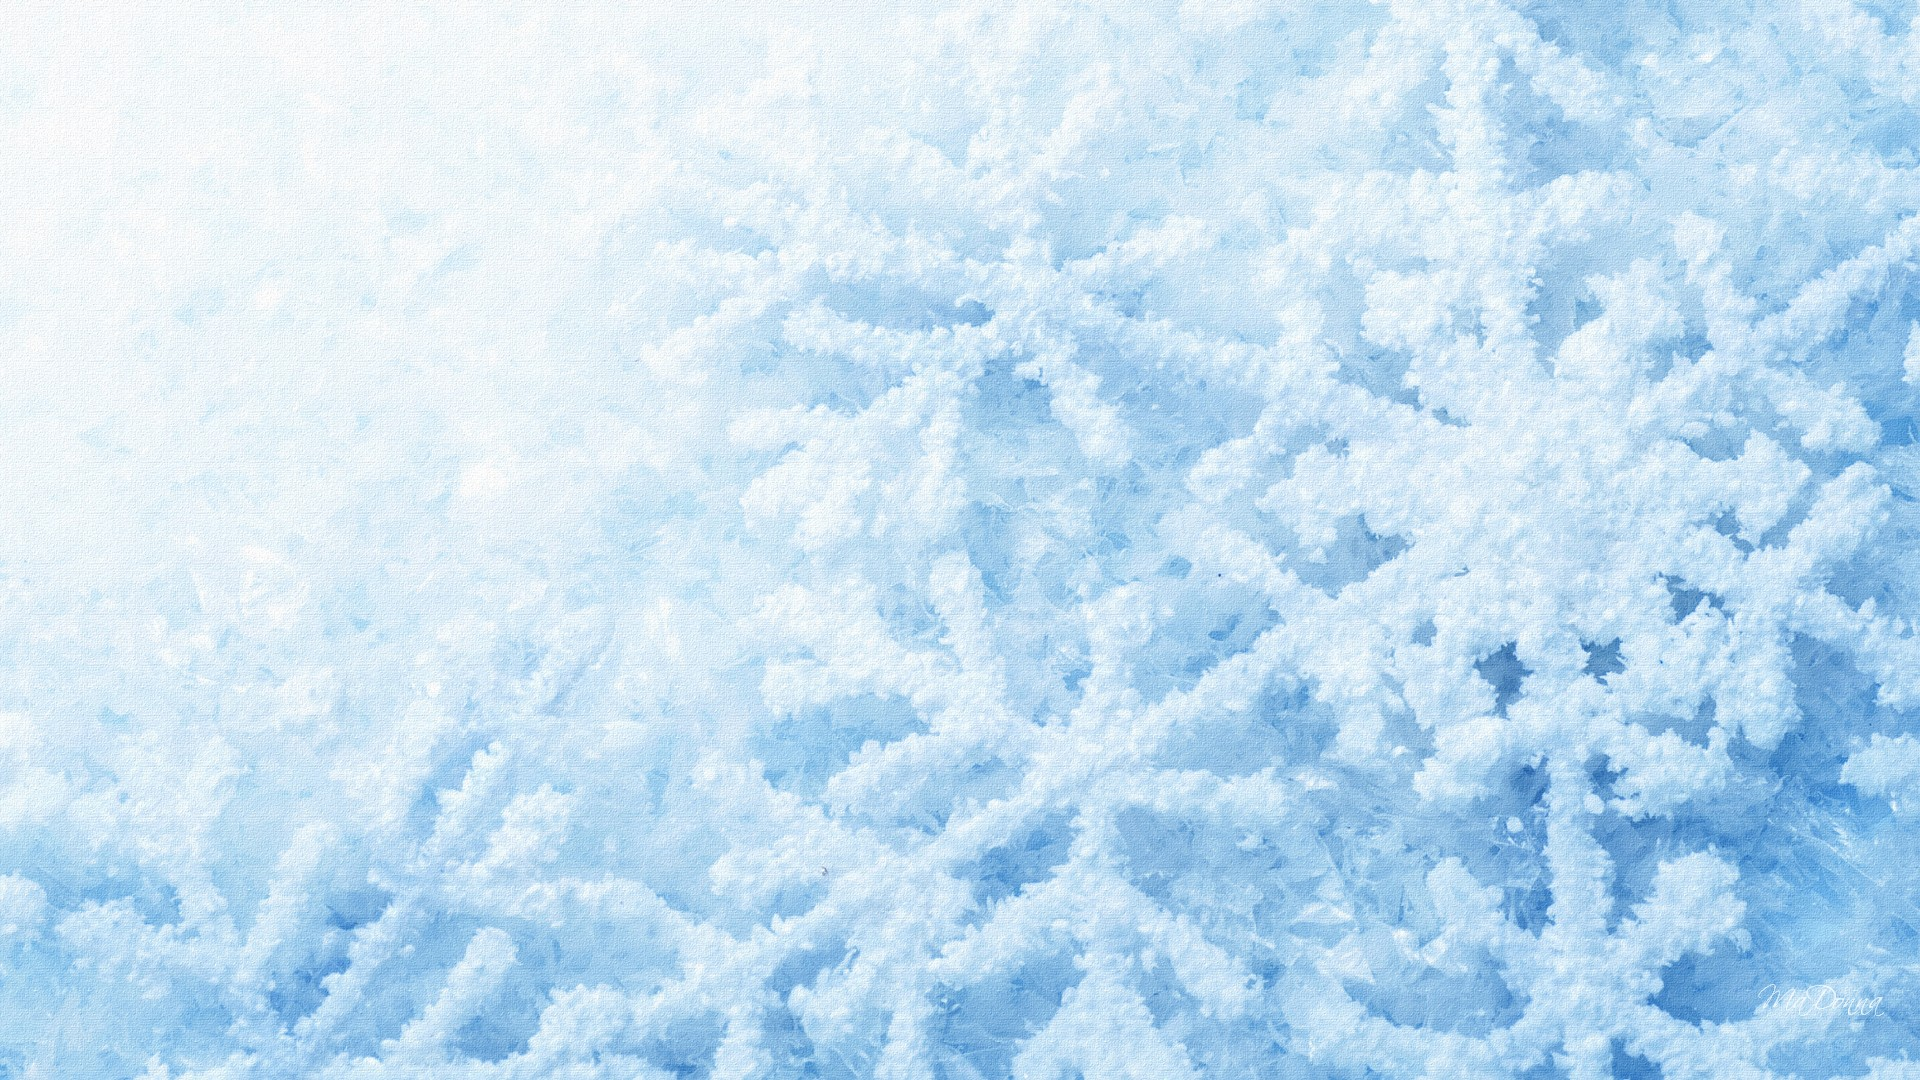 Free Download Snowflake 1080p Wallpaper High Definition High Quality 1920x1080 For Your Desktop Mobile Tablet Explore 73 Snowflake Wallpaper Snow Pictures Wallpaper